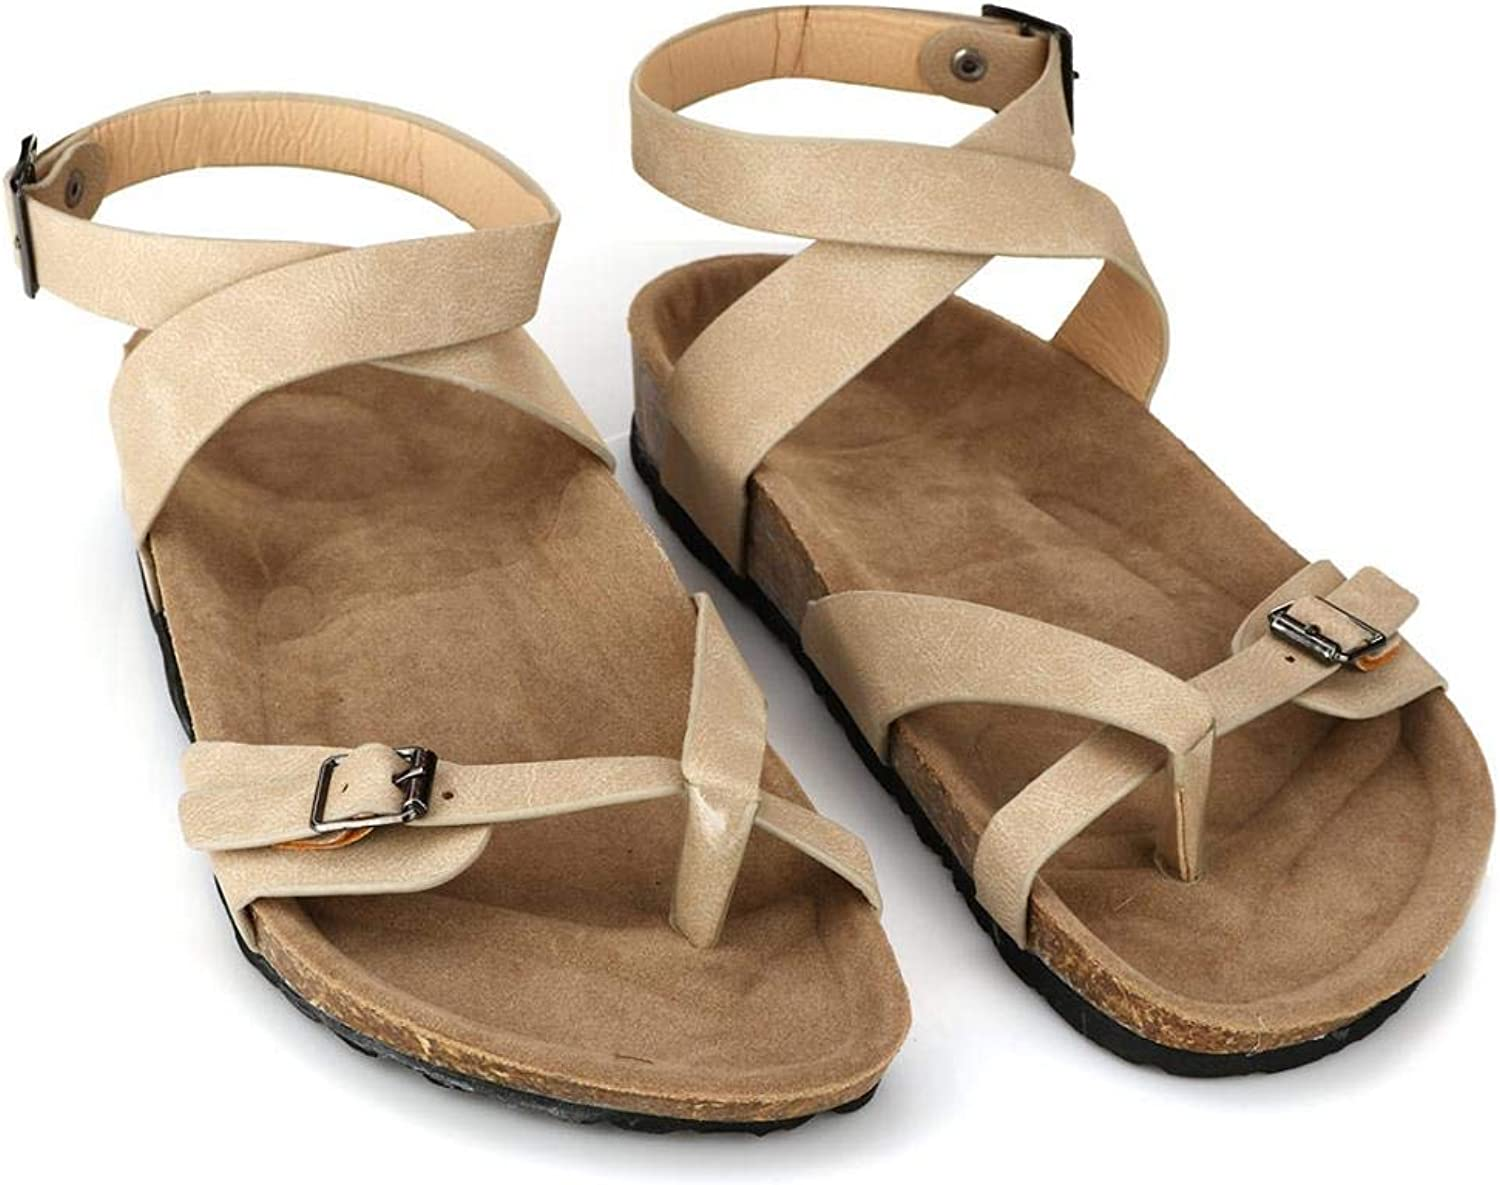 YYW Women Cross Toe Slides Sandals Thong Flat Gladiator Sandals Buckle Strappy Cork Sole for Summer